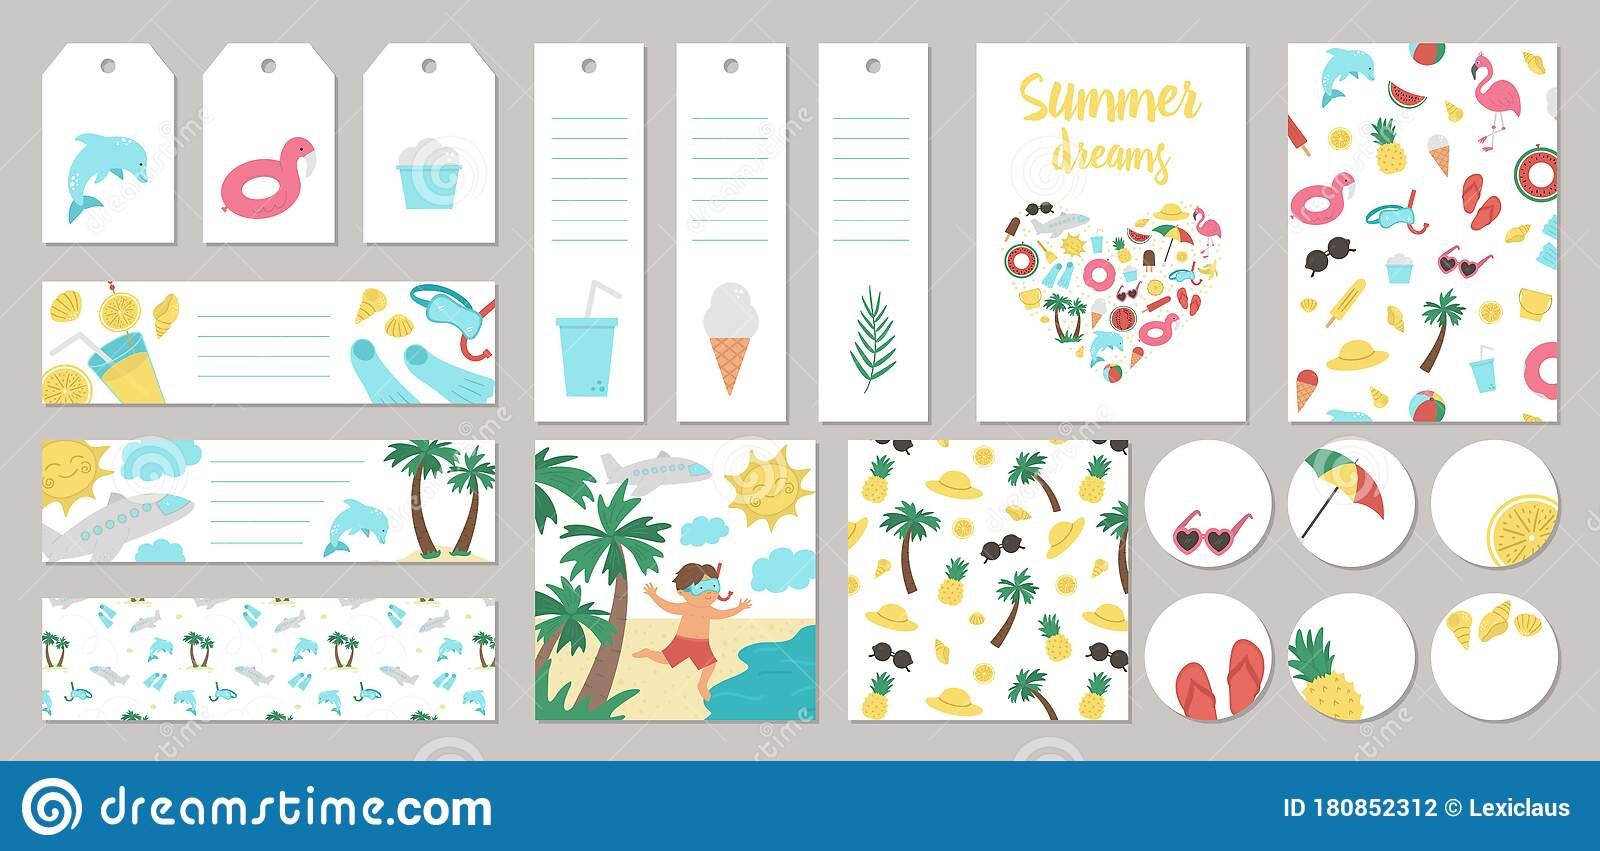 Set Of Vector Summer Gift Tags Labels Pre Made Designs Bookmarks With Palm Tree Plane Sunglasses Inflatable Rings Funny Stock Vector Illustration Of Cartoon Background 180852312